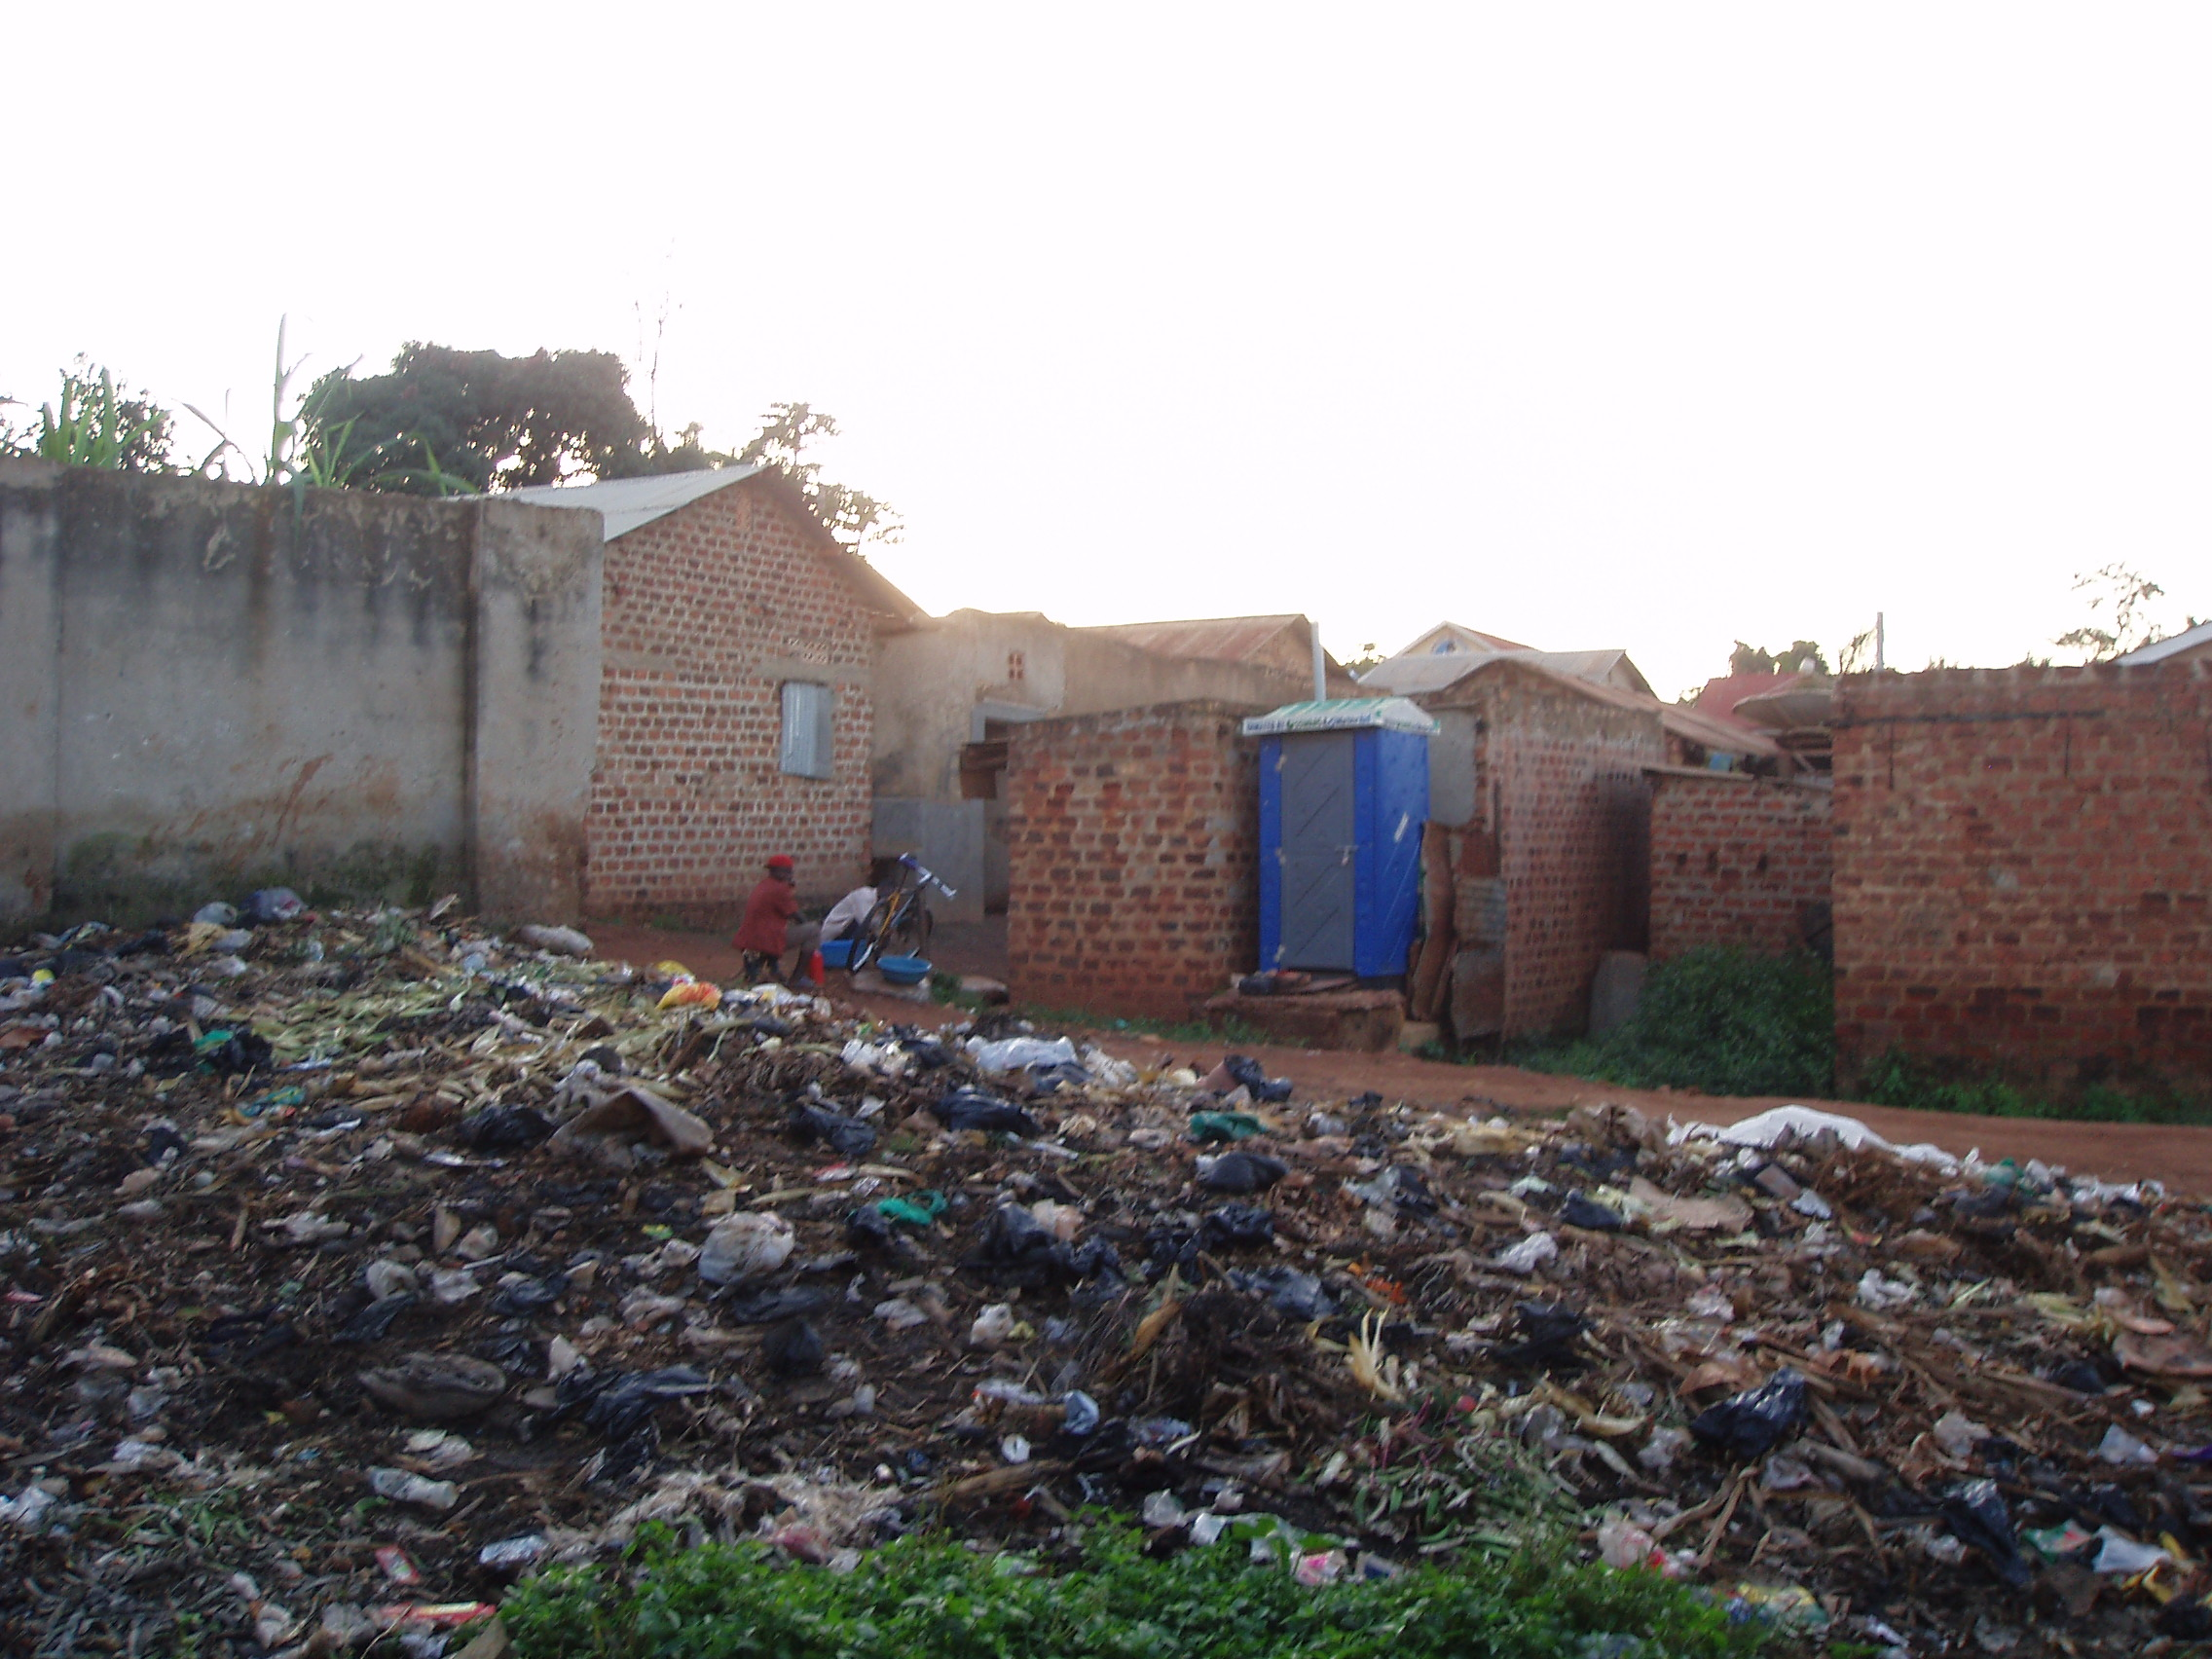 Solid waste management in Kampala